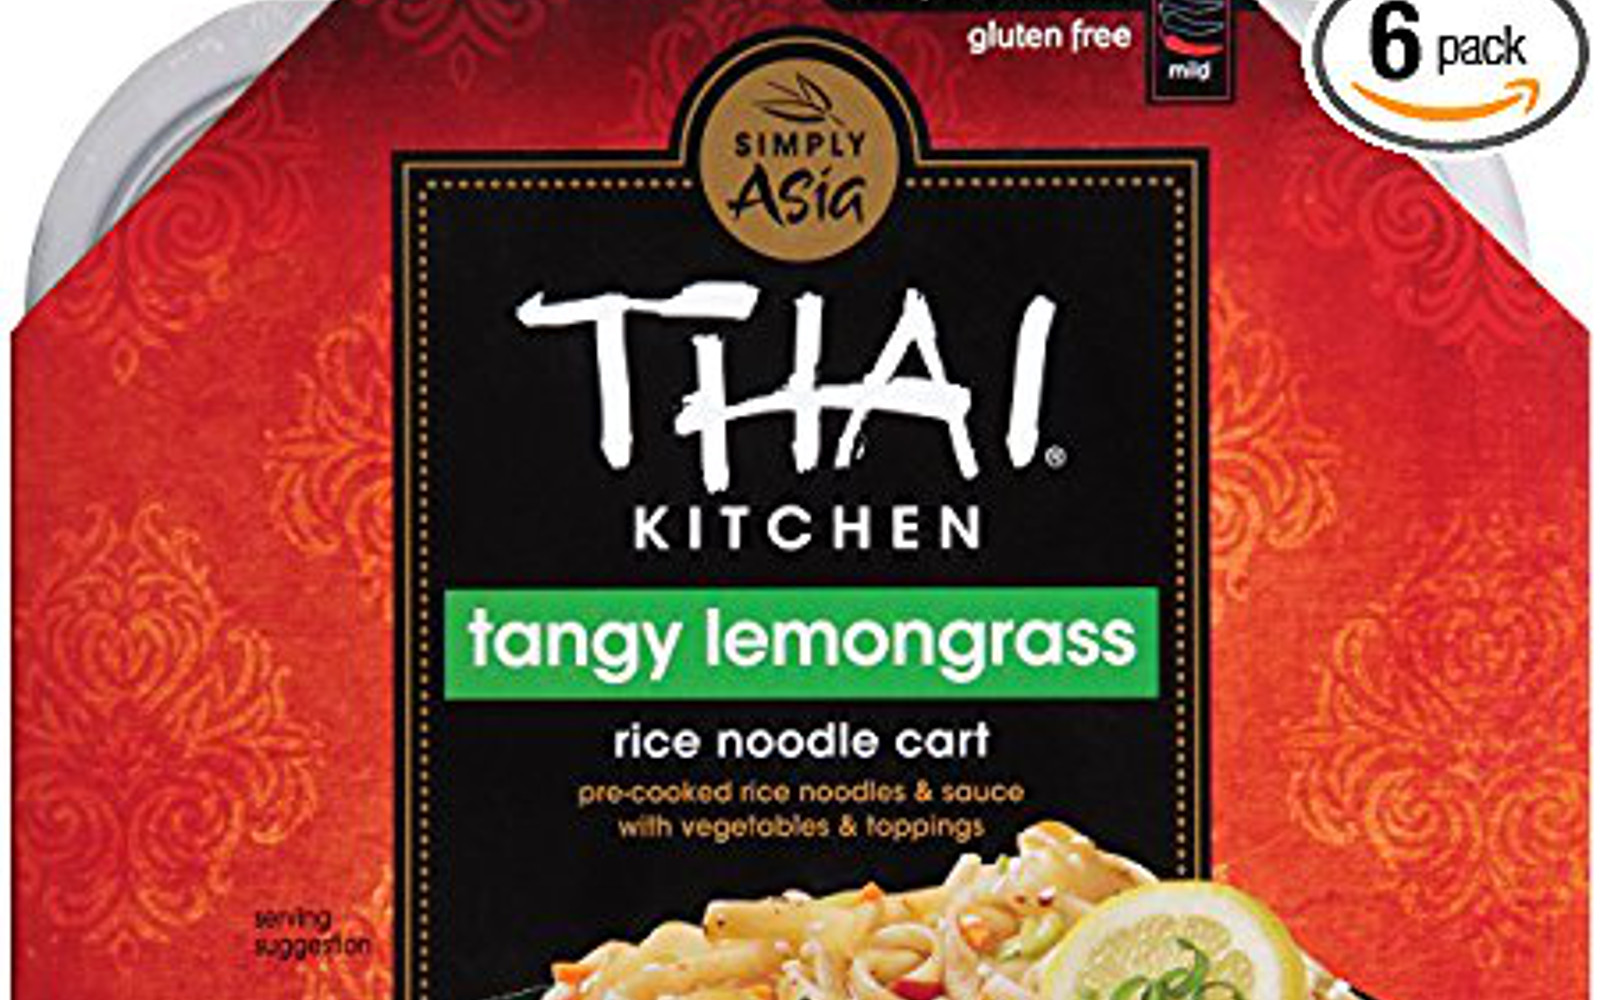 Vegan Amazon Soup Finds for #NationalSoupMonth | Vegan Thai Kitchen Tangy Lemongrass Rice Noodle Cart, 9.7 oz (Case of 6)